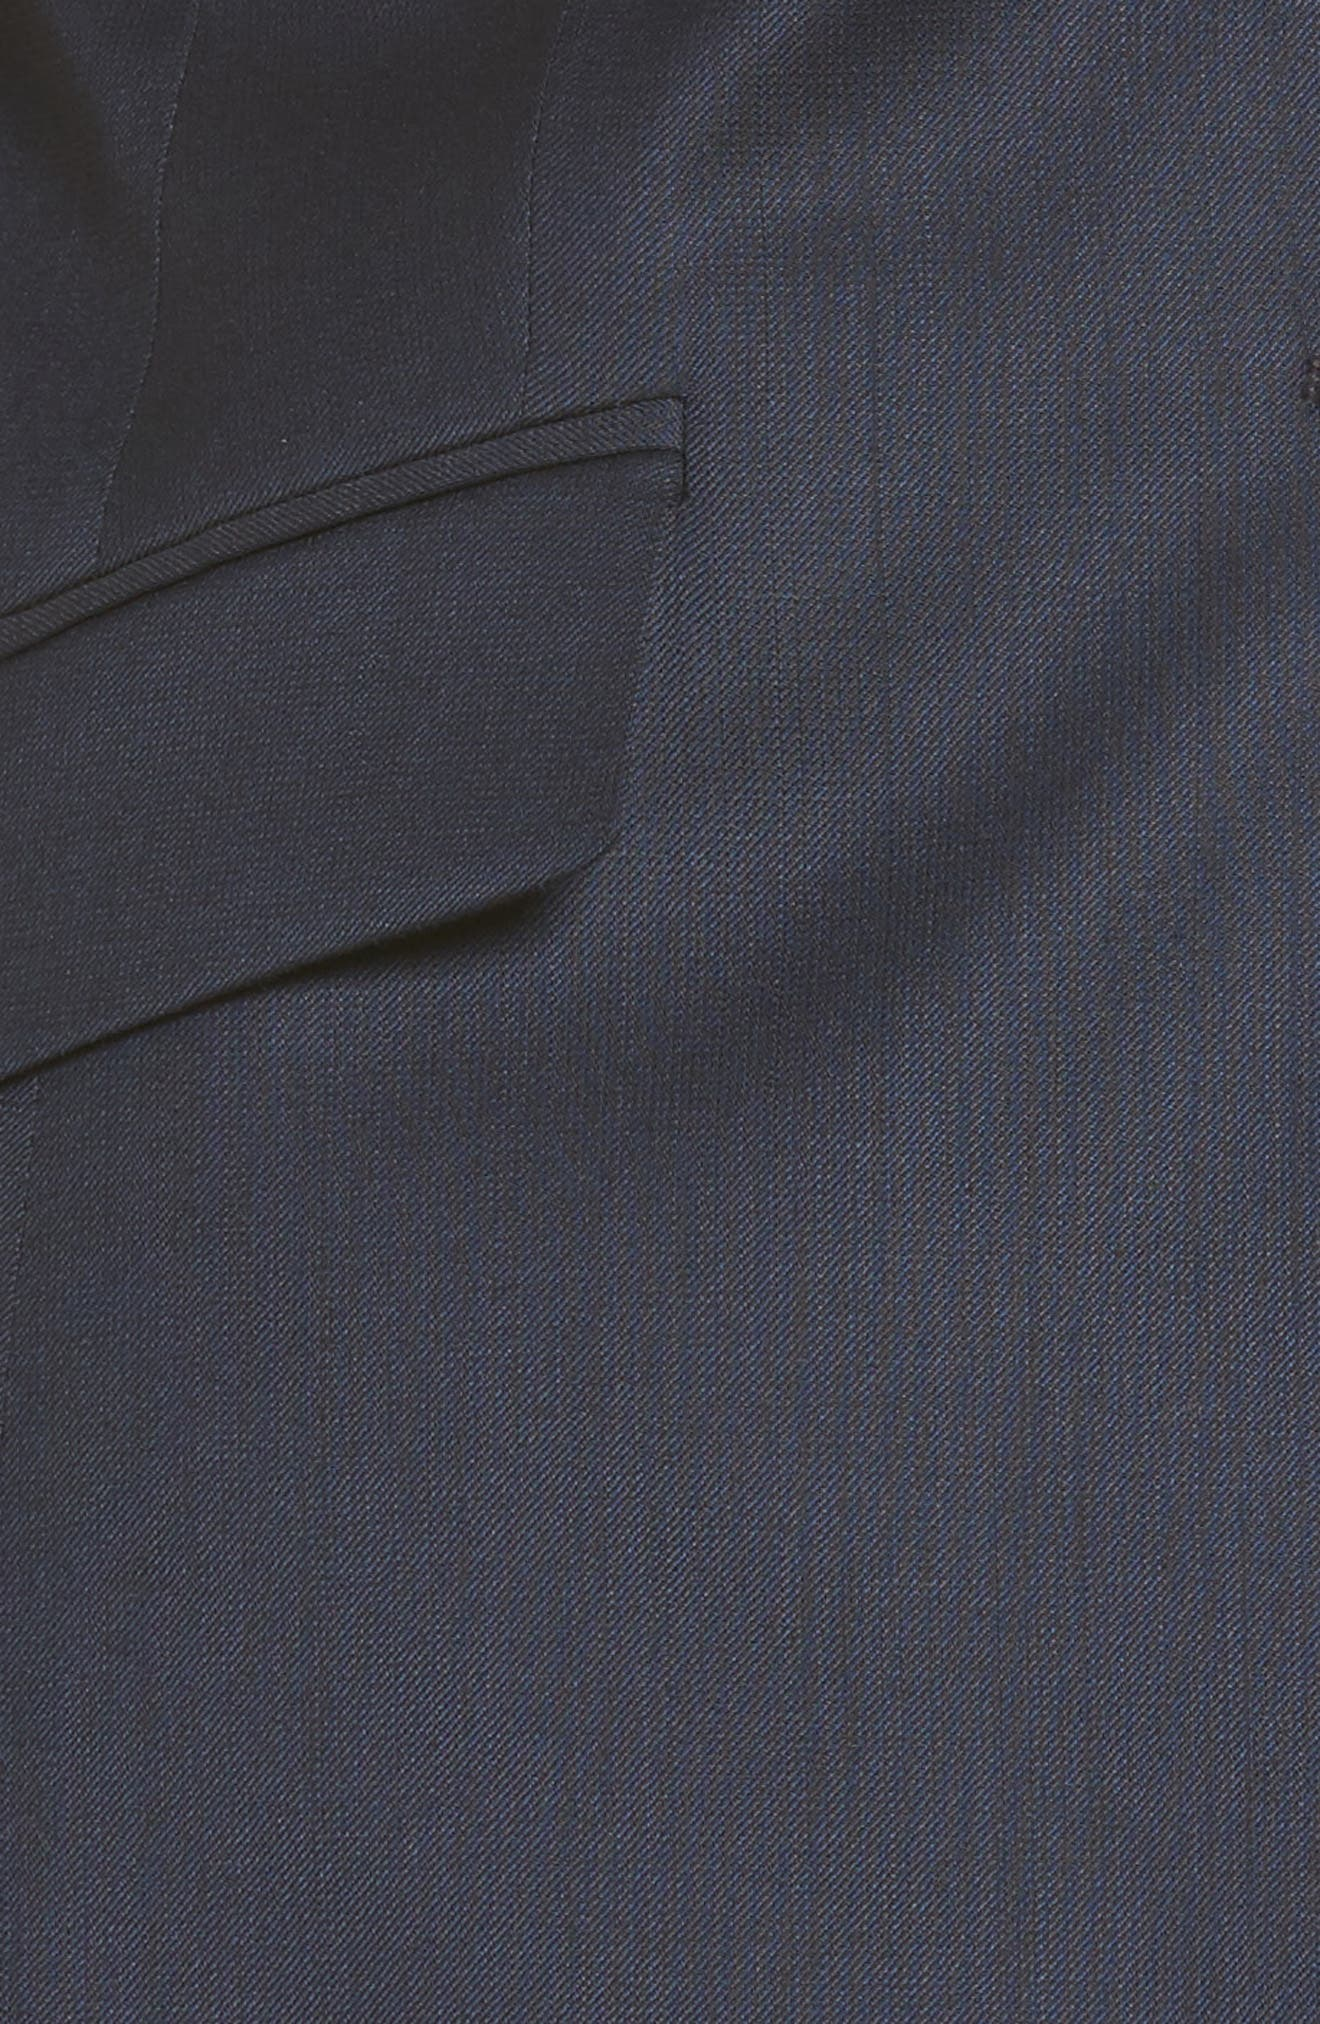 Stretch Wool Blend Suit Trousers,                             Alternate thumbnail 6, color,                             424